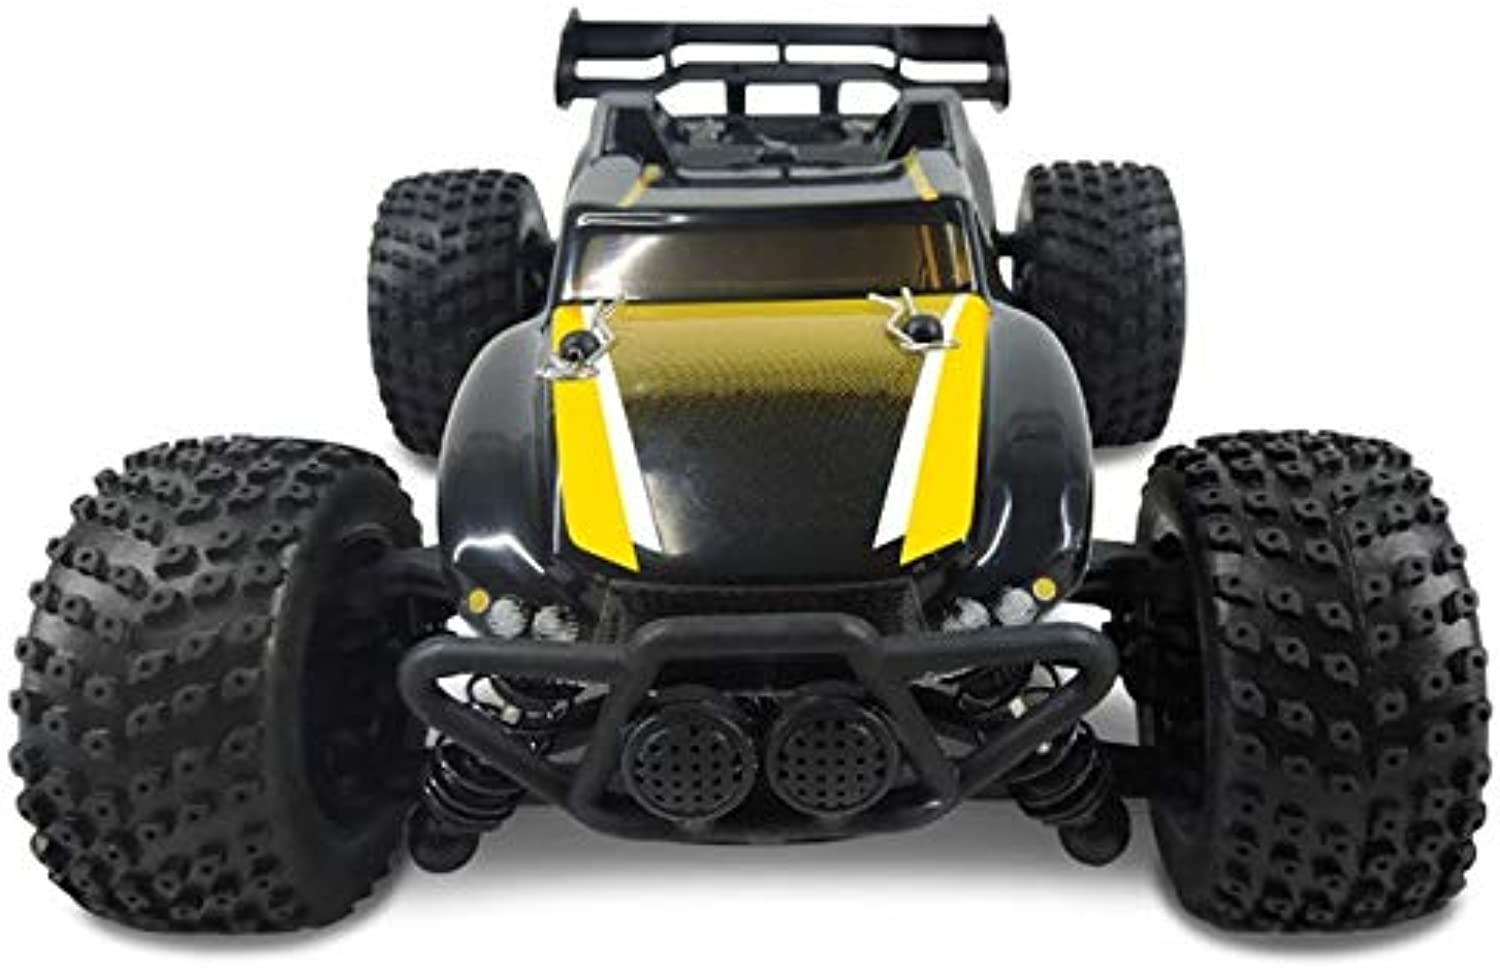 XuBa RC Auto 1 24 Mastab Off Road Monster Truck 4WD Fernsteuerung Auto High Speed Brushless Electric Car Remote Control Toys Gelb